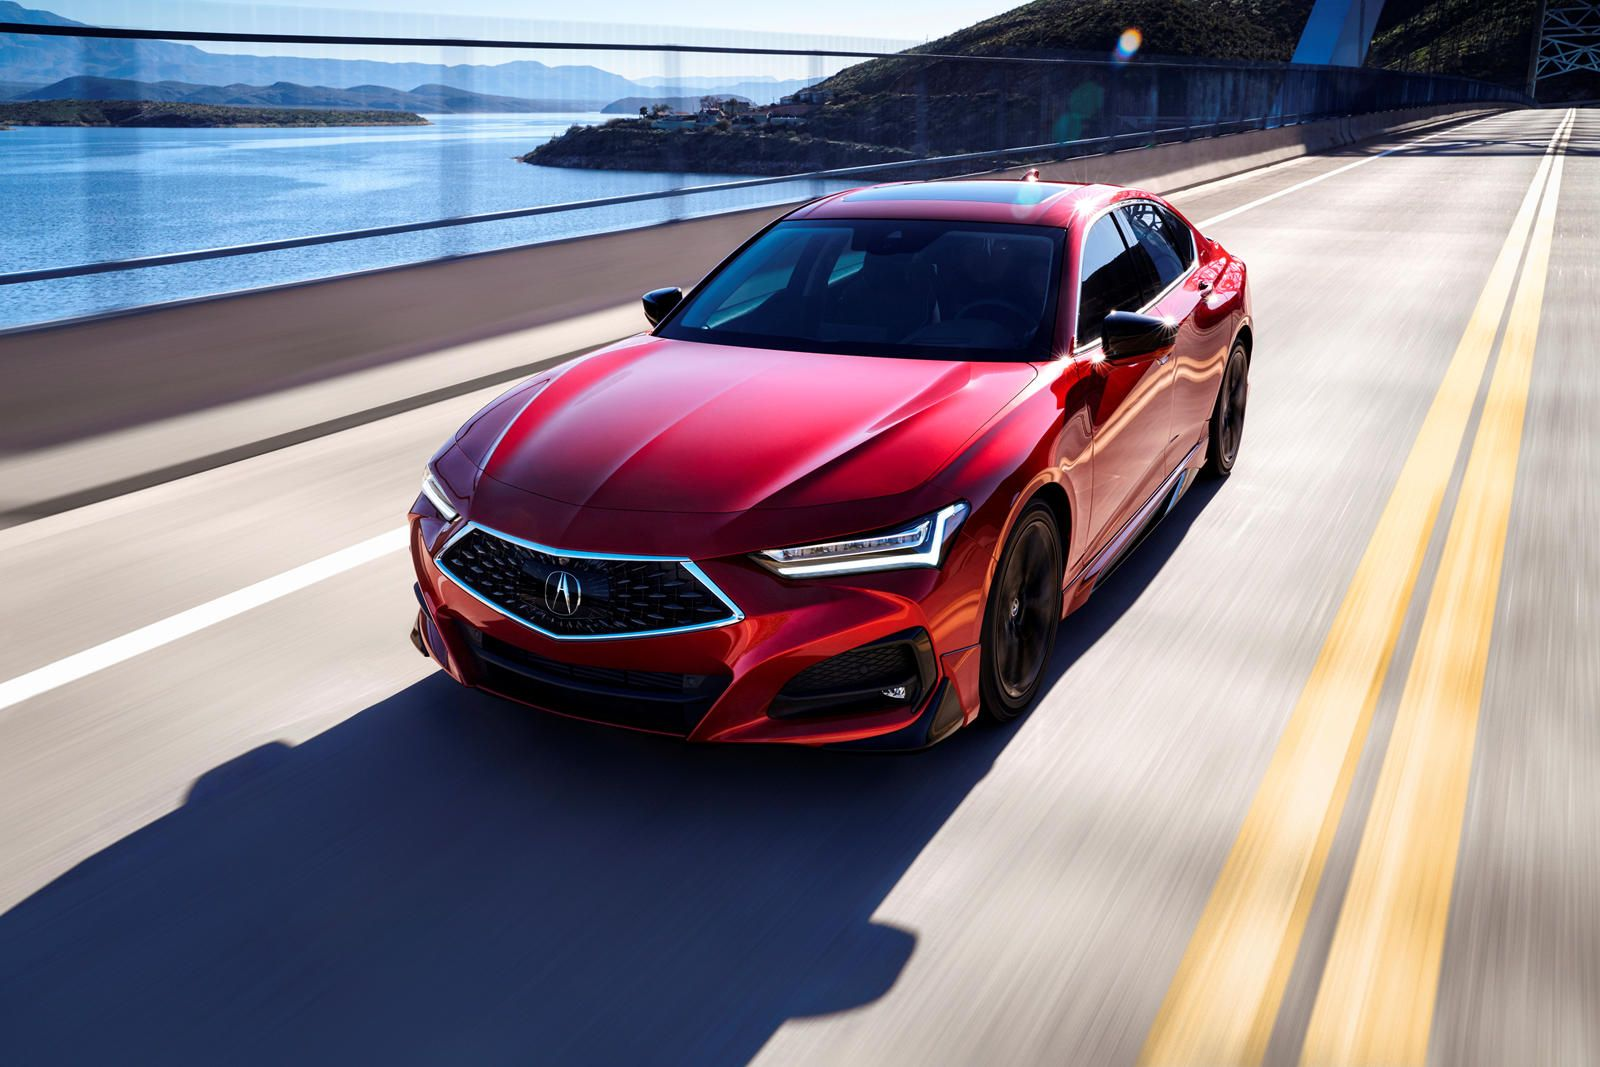 2021 Acura Tlx First Look Review The Magic Is Back The Legend Returns In 2020 Acura Tlx Sports Sedan Acura Sedan